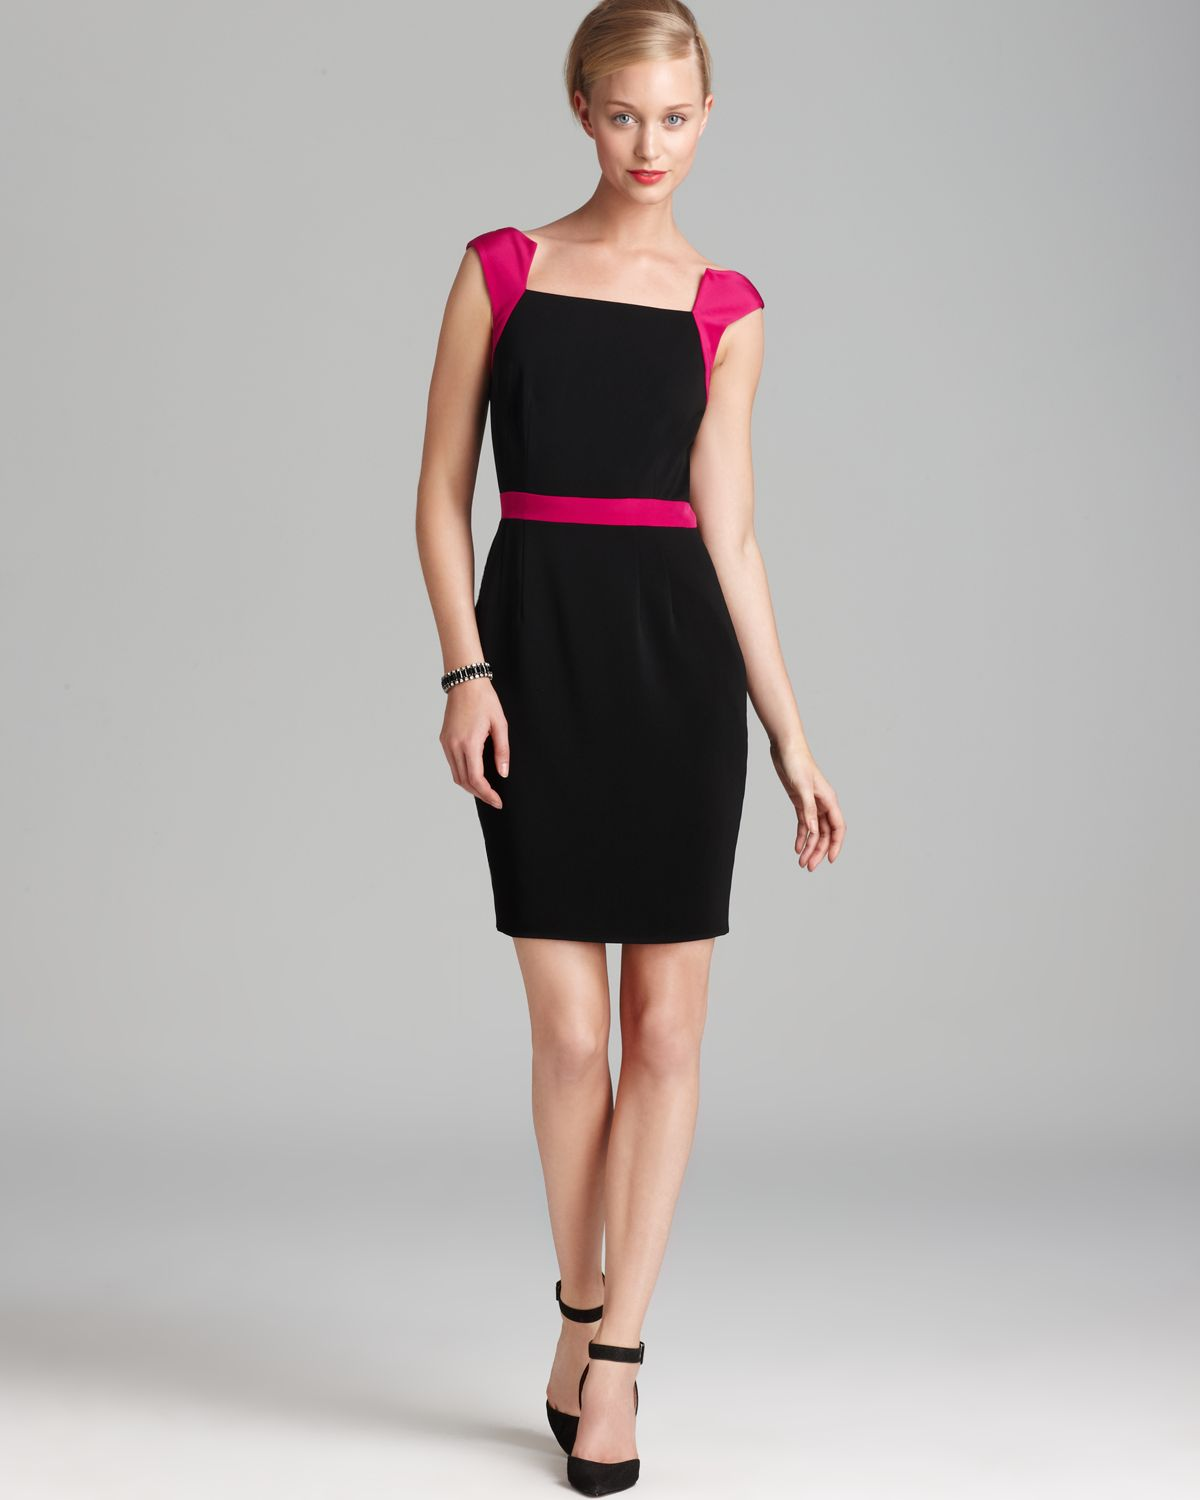 Jay Godfrey Contrast Strap Sheath Dress - Vantage | Bloomingdale's